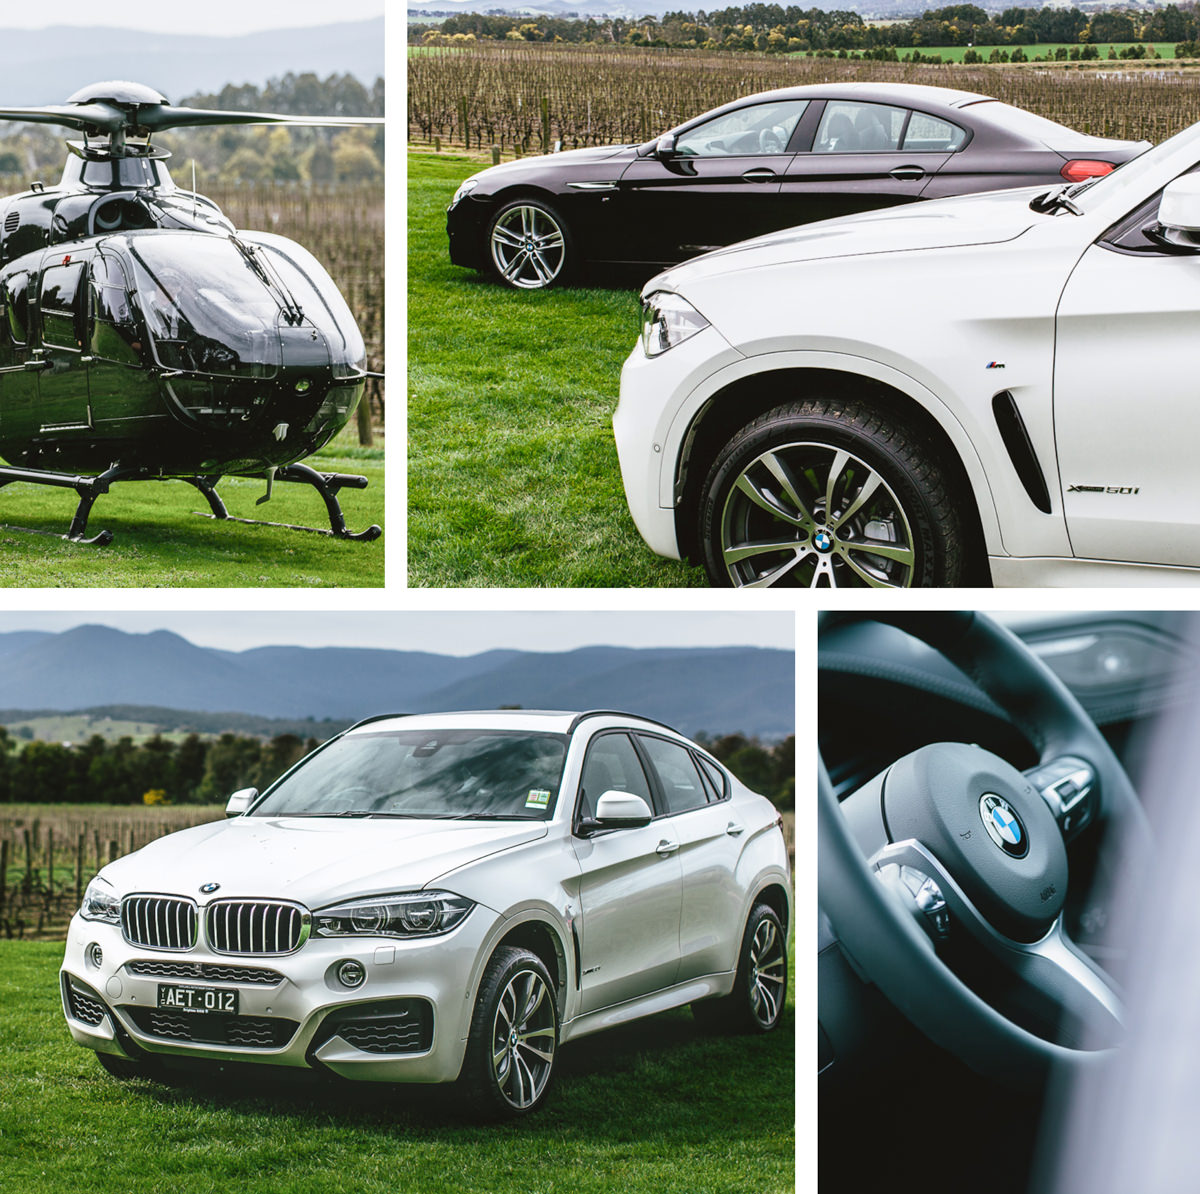 BMW event in the yarra valley - photographed by freshphotography